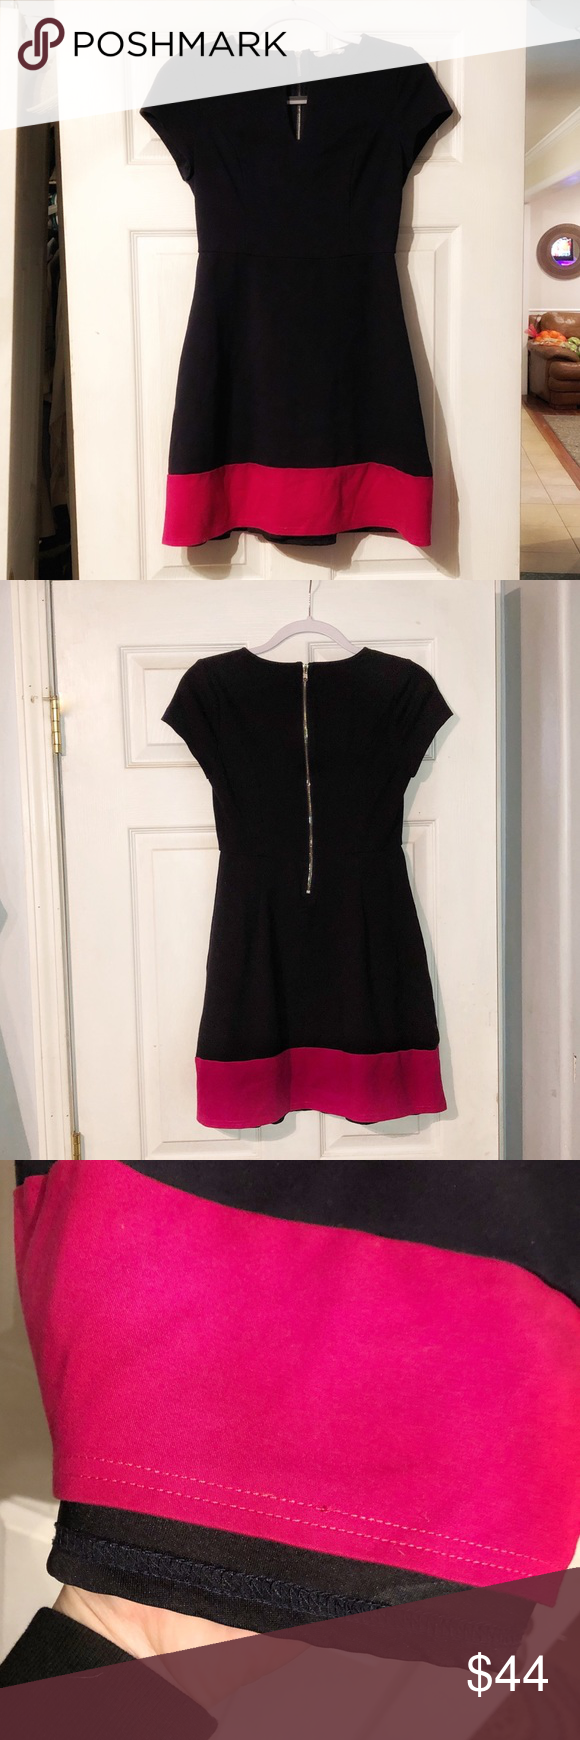 41 Hawthorn size small navy blue & hot pink dress 41 Hawthorn short sleeved size small navy blue & hot pink dress.  Dress is very cut.  Top portion has a slim fit and the bottom portion has some flare to it.  Preowned but good condition with only minor wear. 41 Hawthorn Dresses Midi #navyblueshortdress